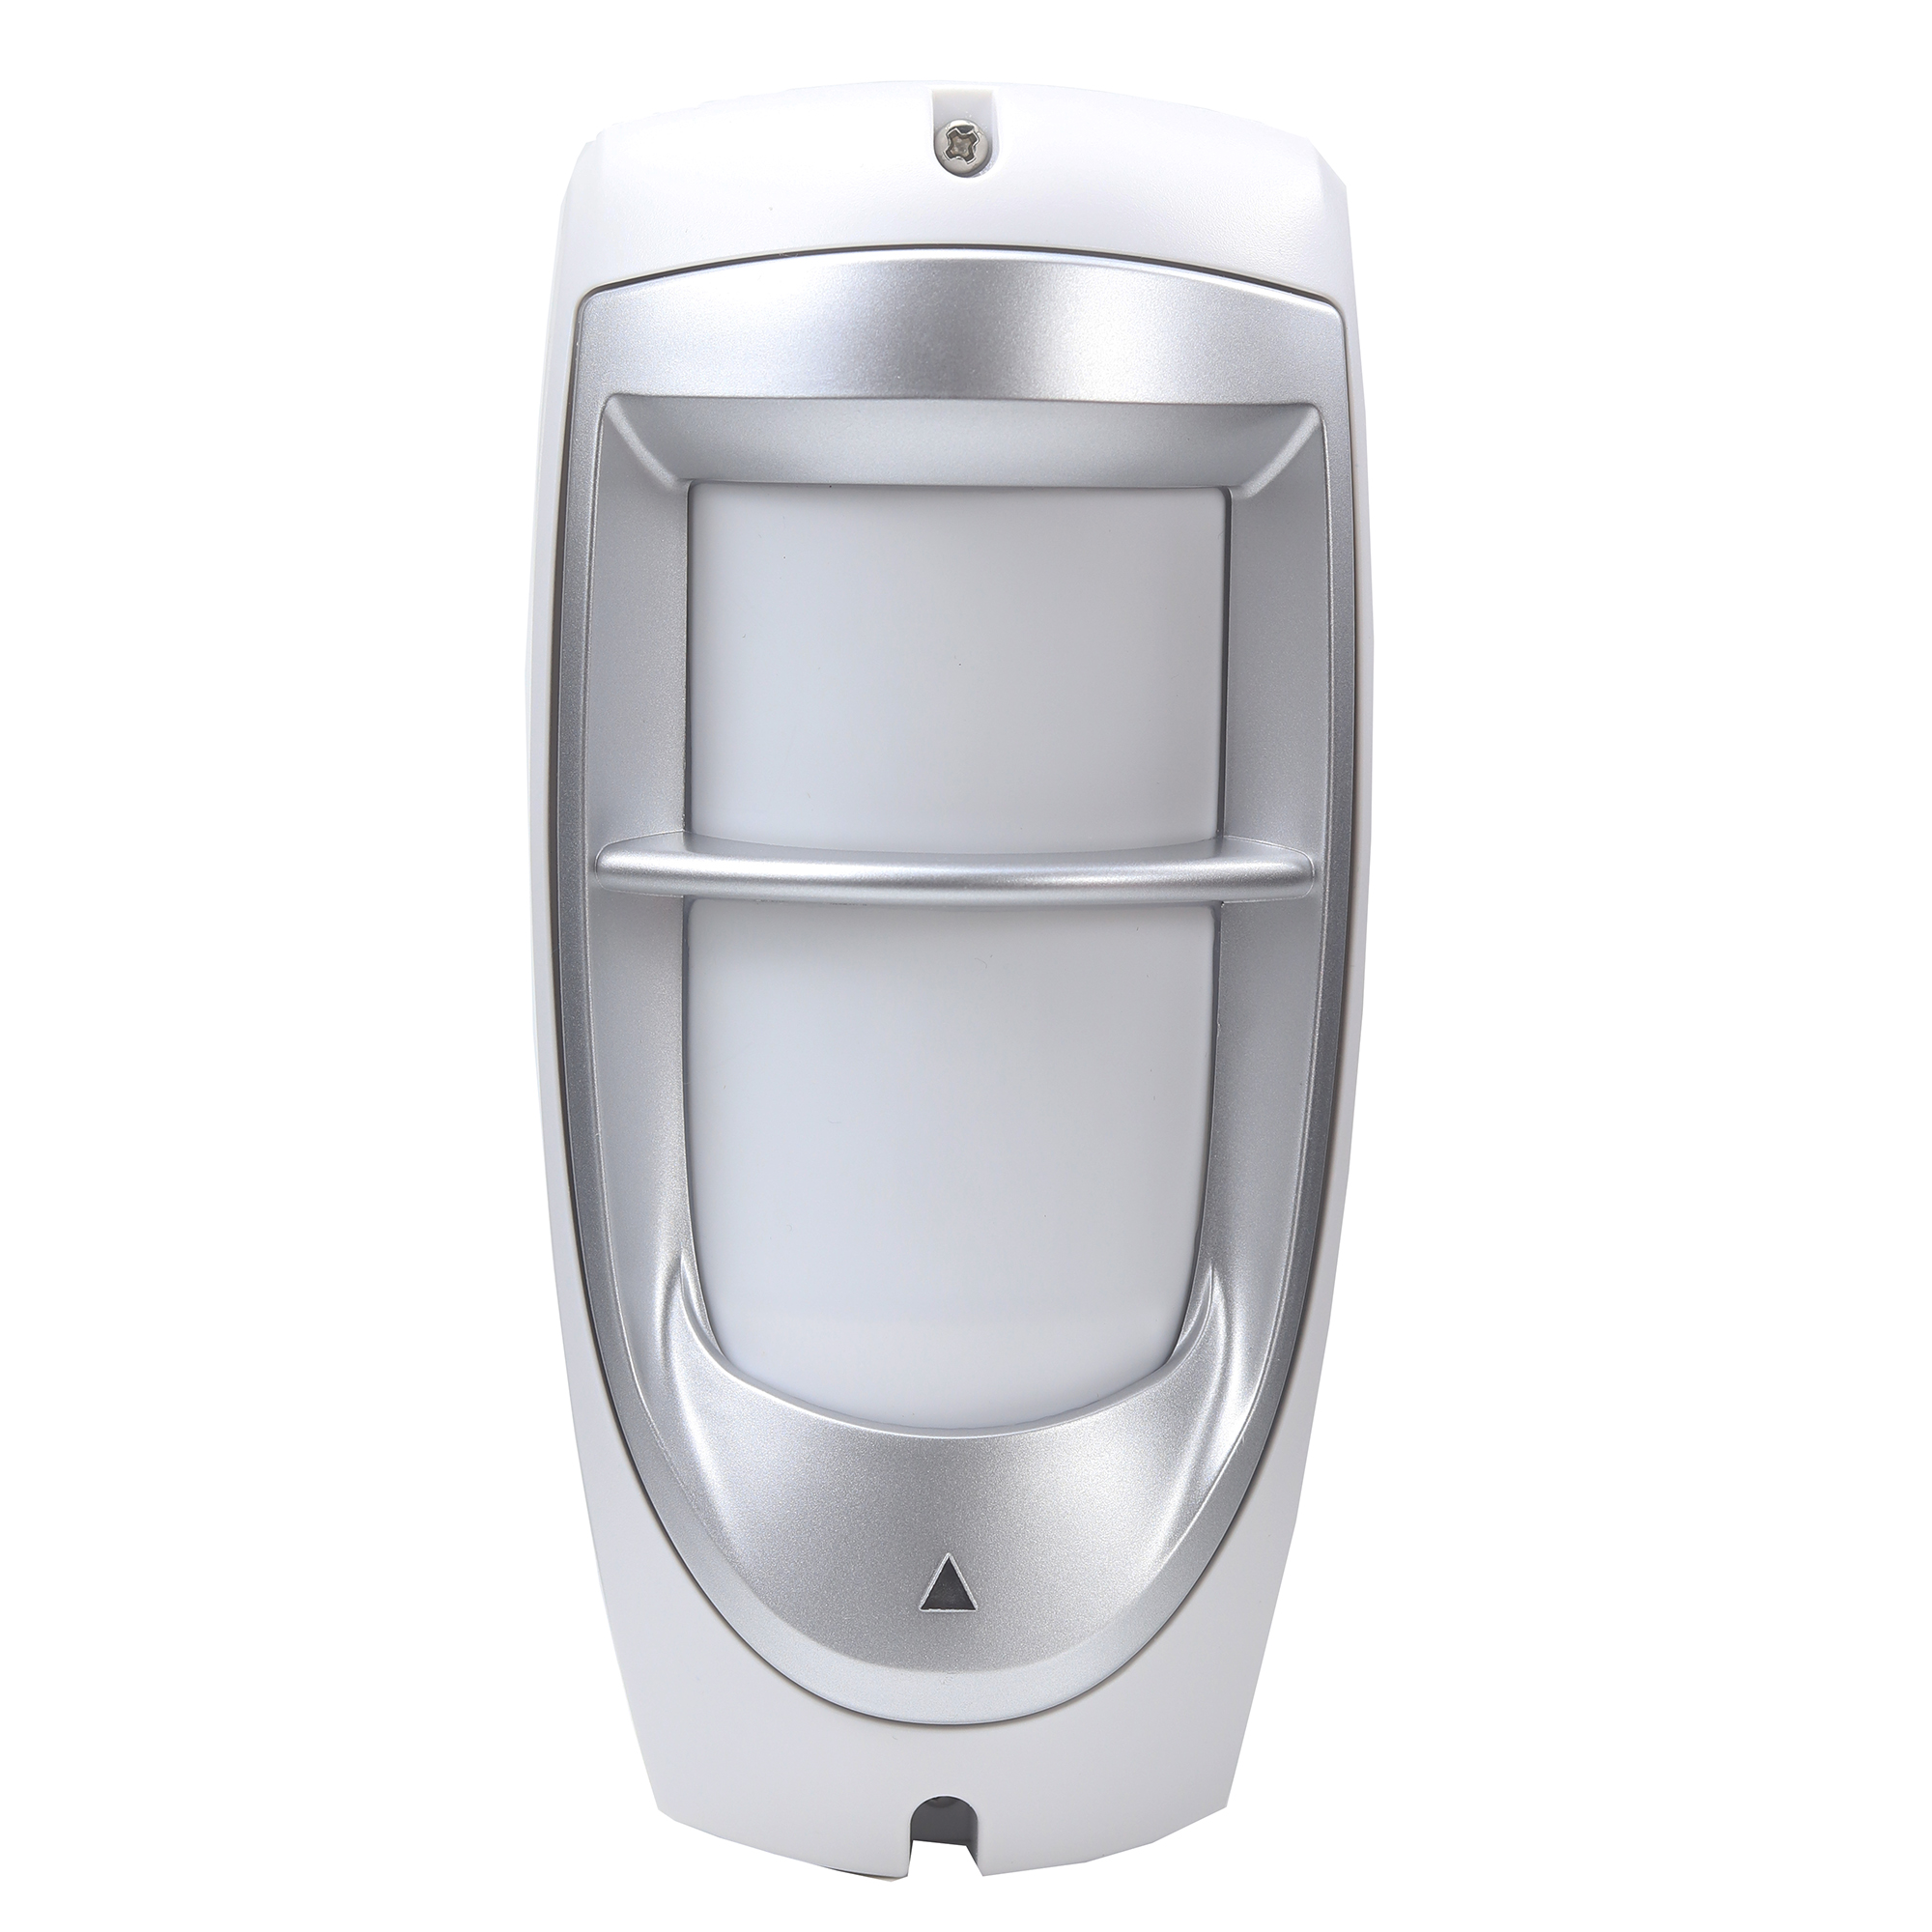 GZGMET Wired Pet Friendly Immune Outdoor Pir Motion Detector Weather ...